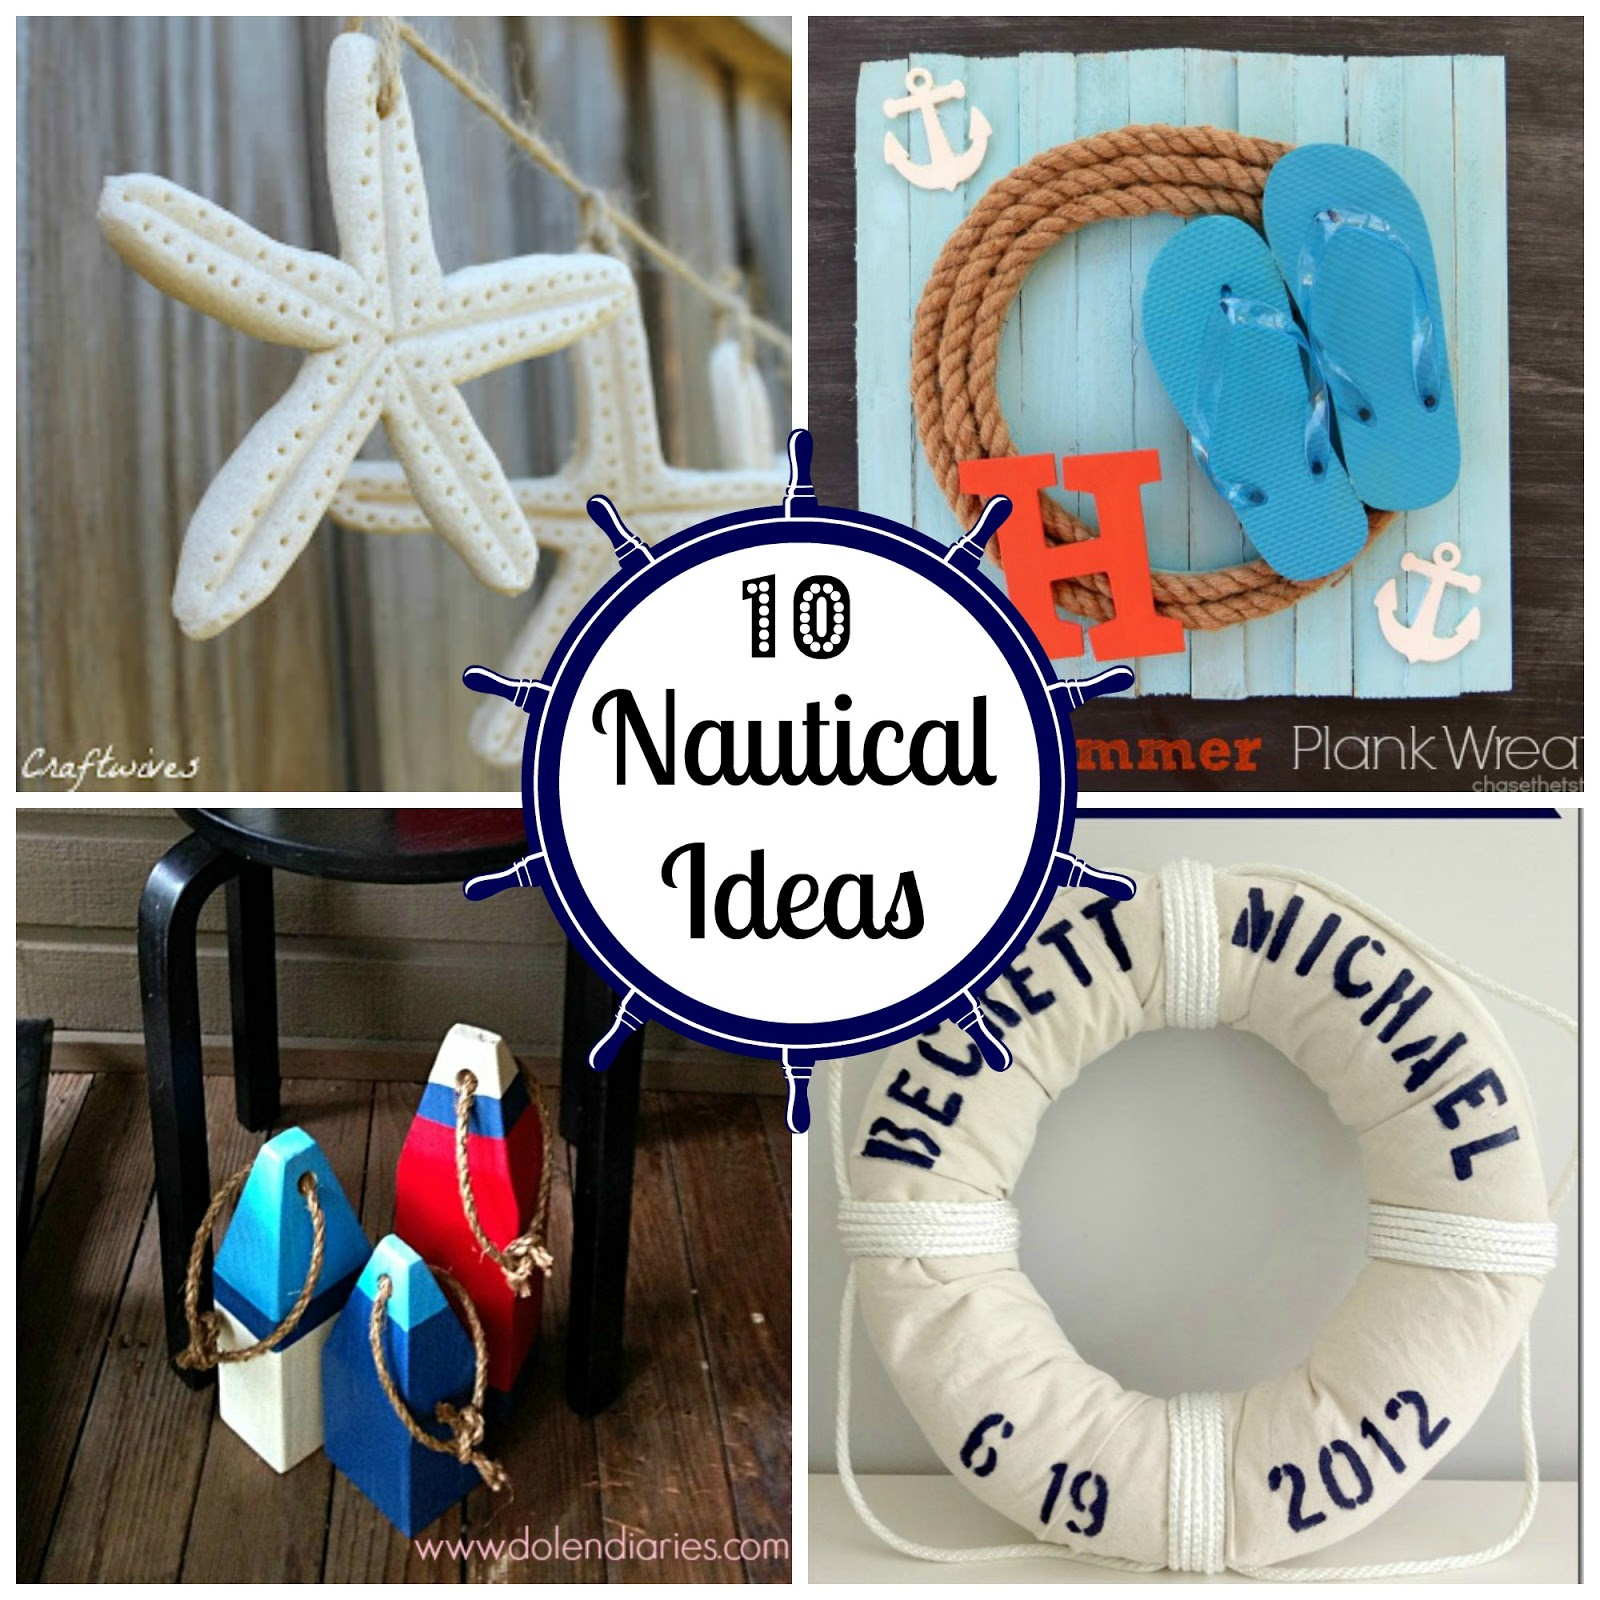 10 nautical ideas fun home things